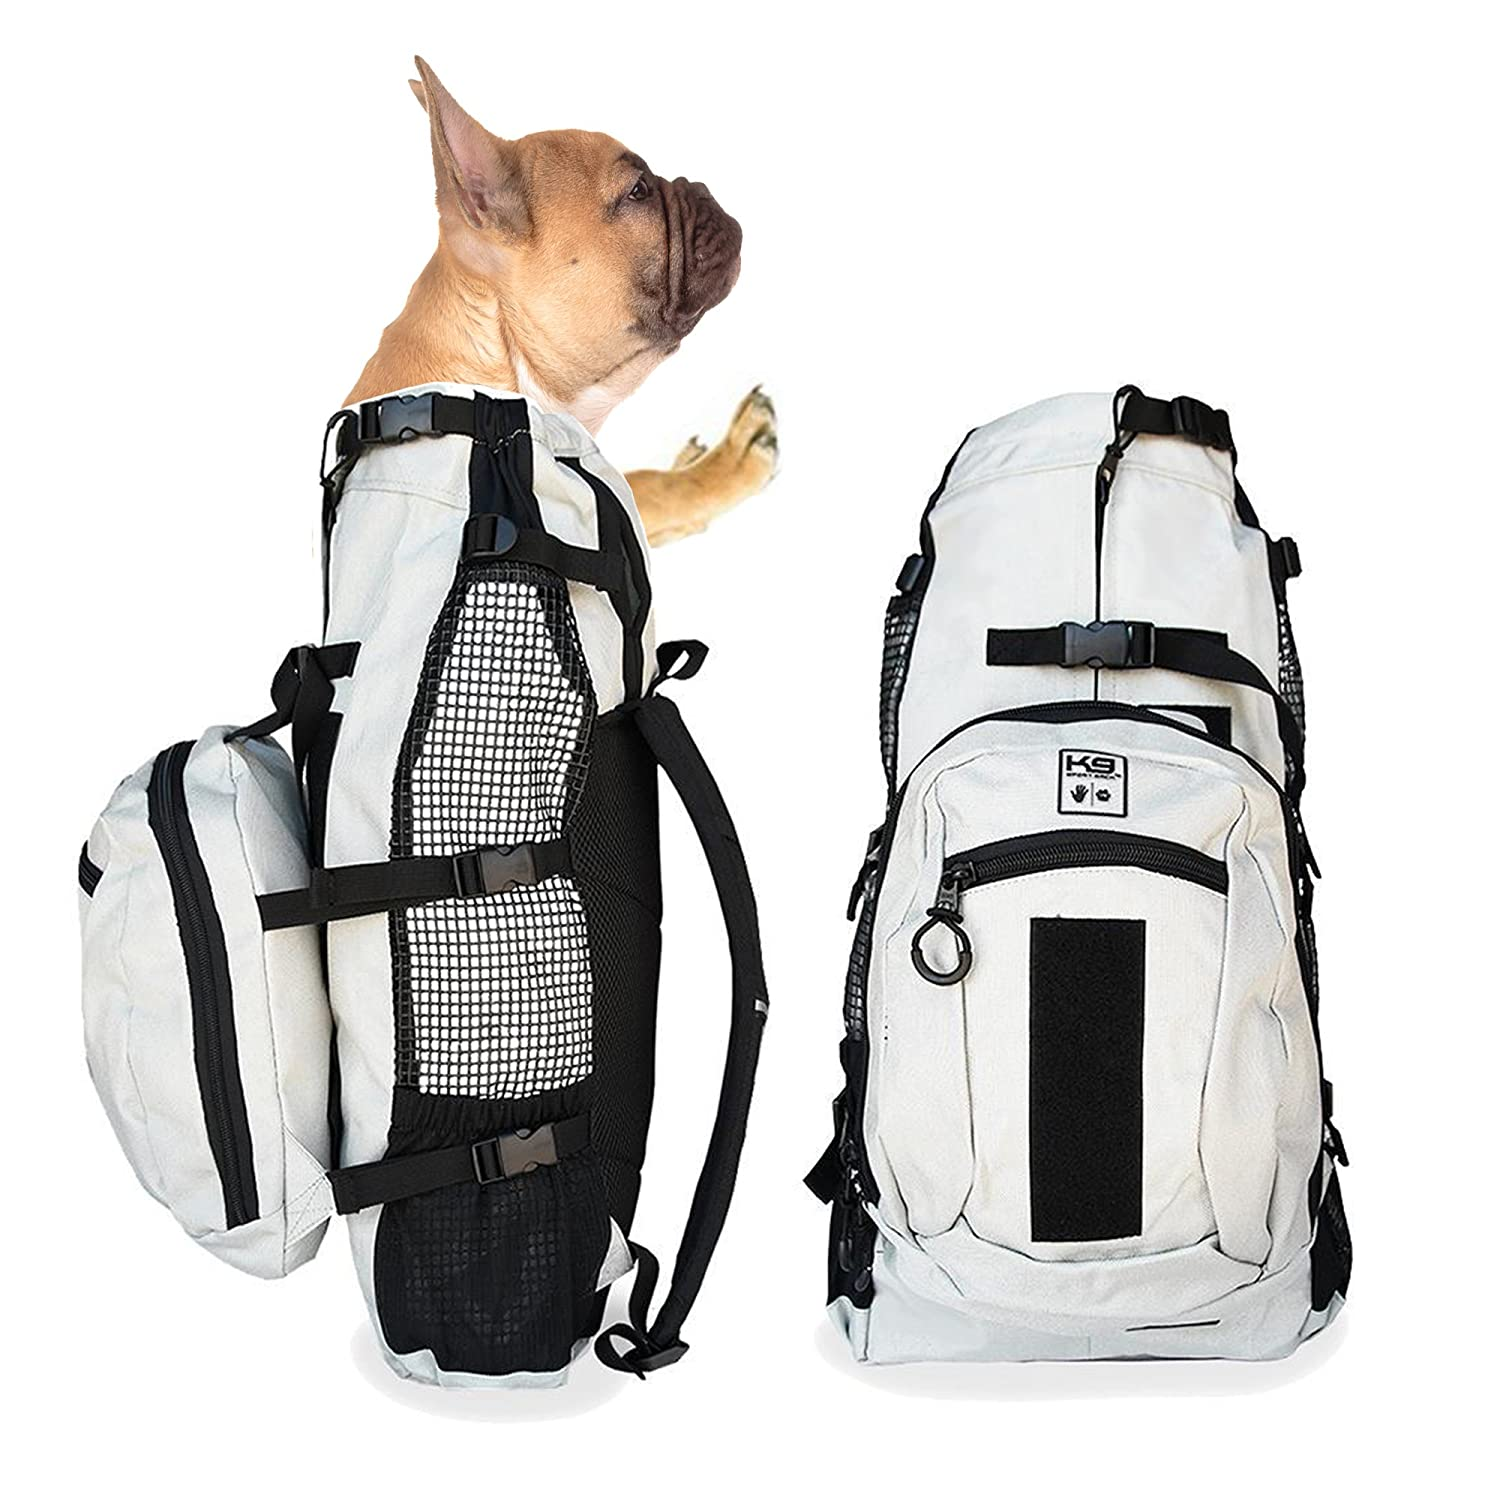 K9 Sport Sack AIR PLUS | Dog Carrier Backpack For Small and Medium Pets | Front Facing Adjustable Pack With Storage Bag | Fully Ventilated | Veterinarian Approved